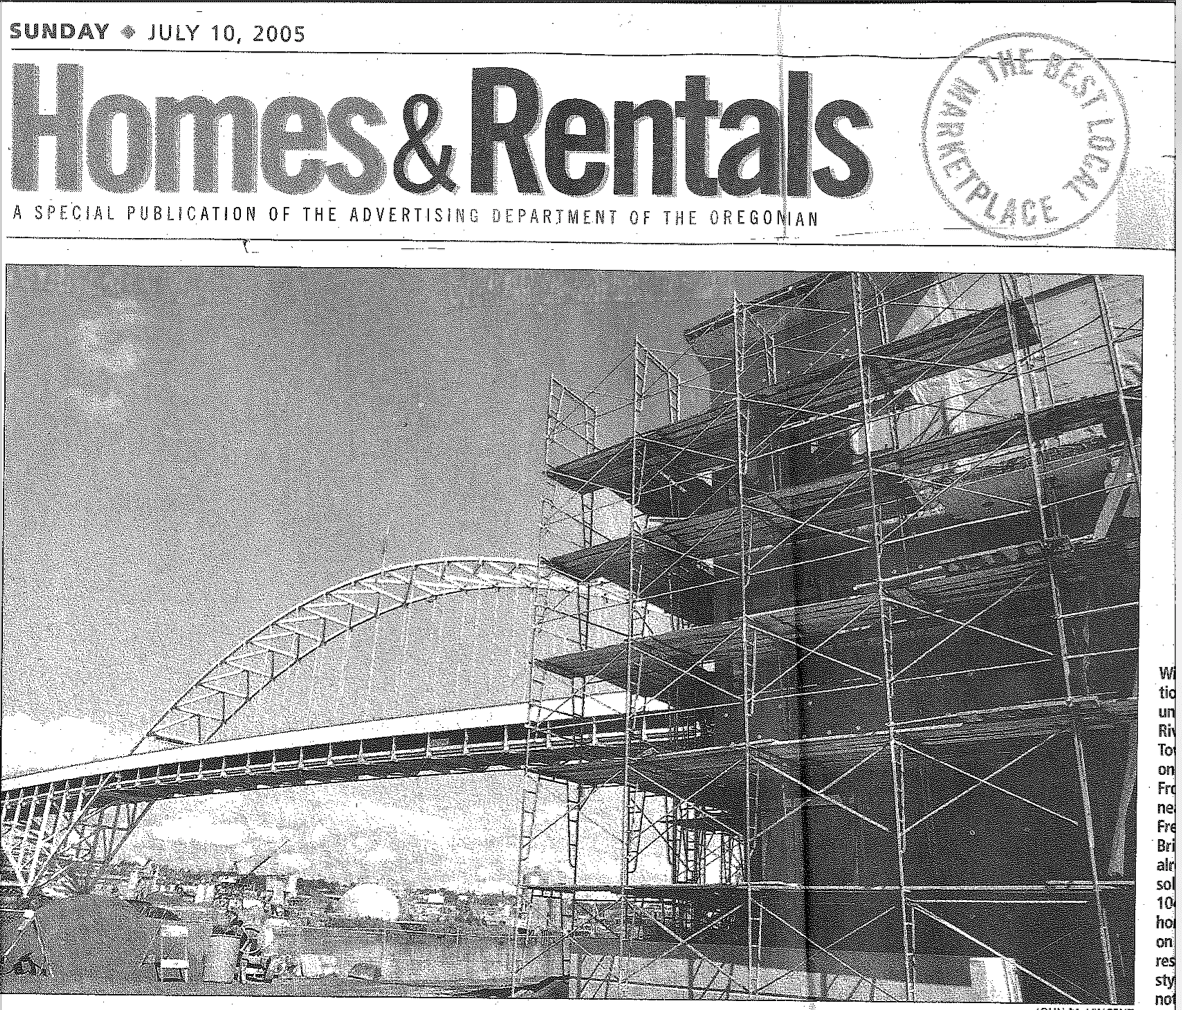 PRESS-SOWA-Waterfront-Condo-Wave-Homes-Rental-Oregonian-07-10-2005